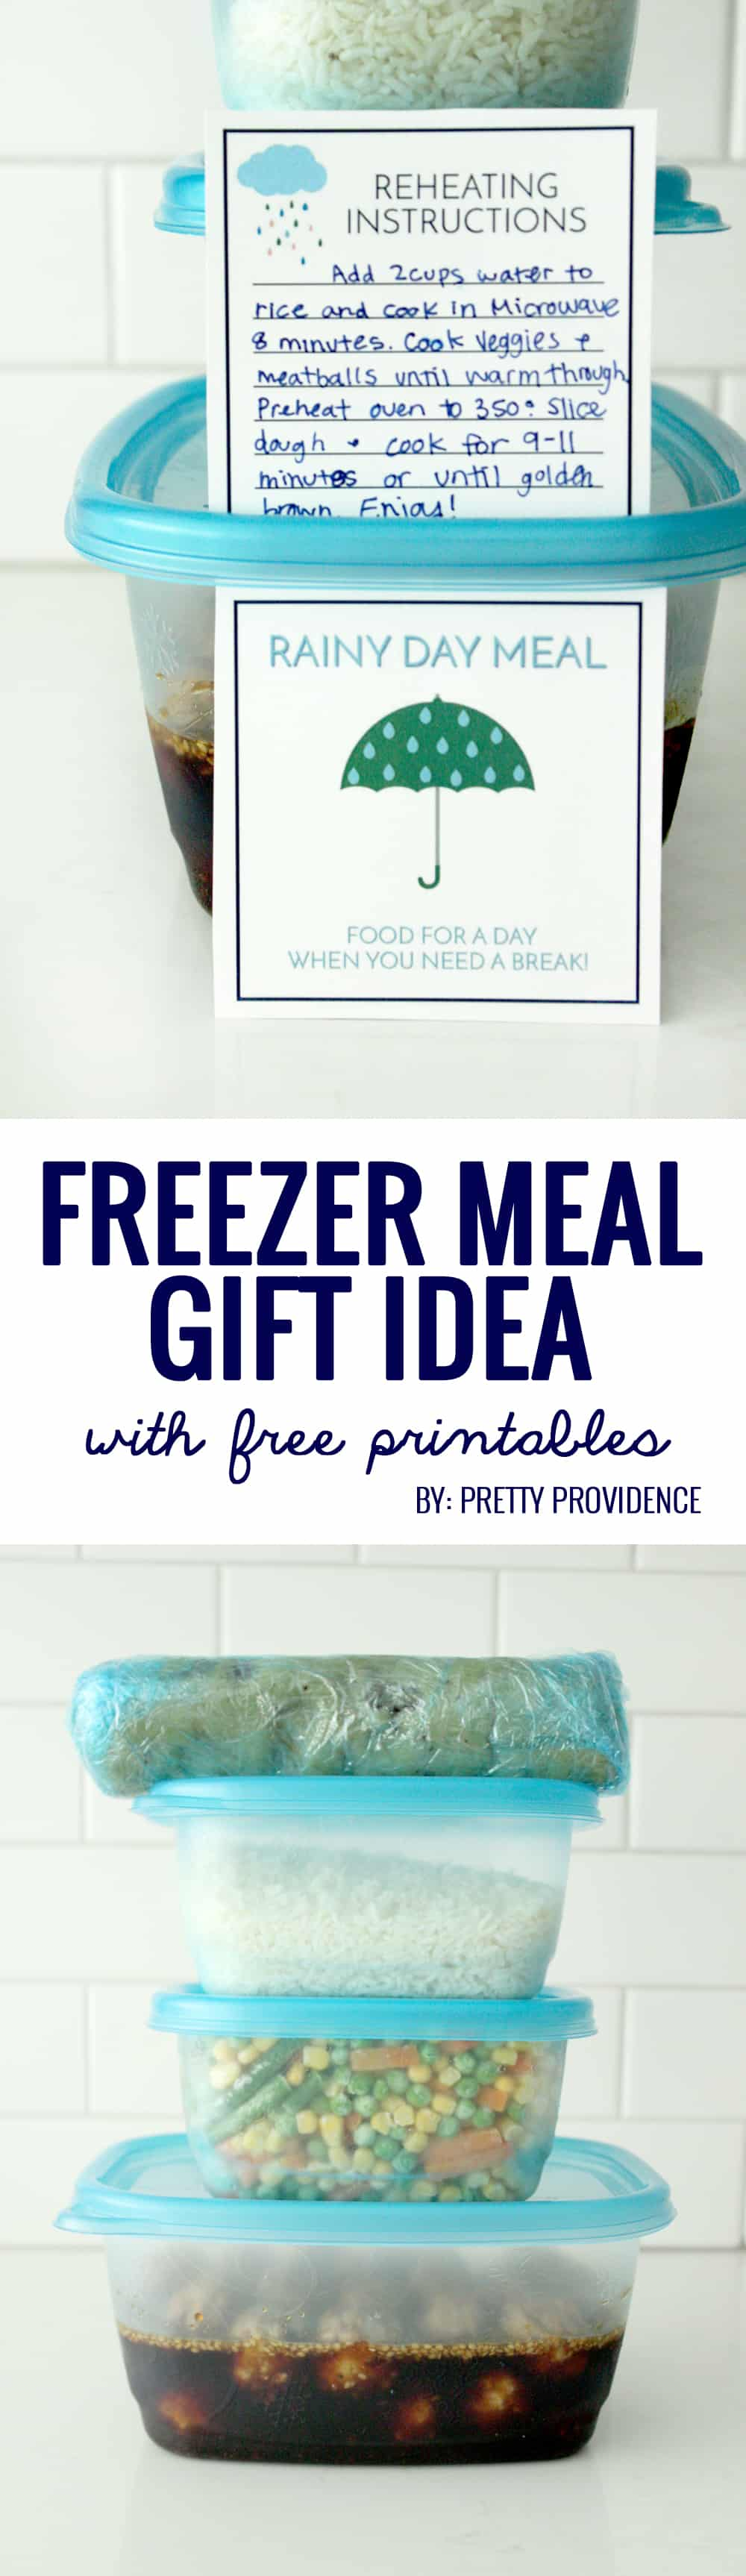 I love taking freezer meals to friends who are sick or have new babies! Perfect little printable to go with!